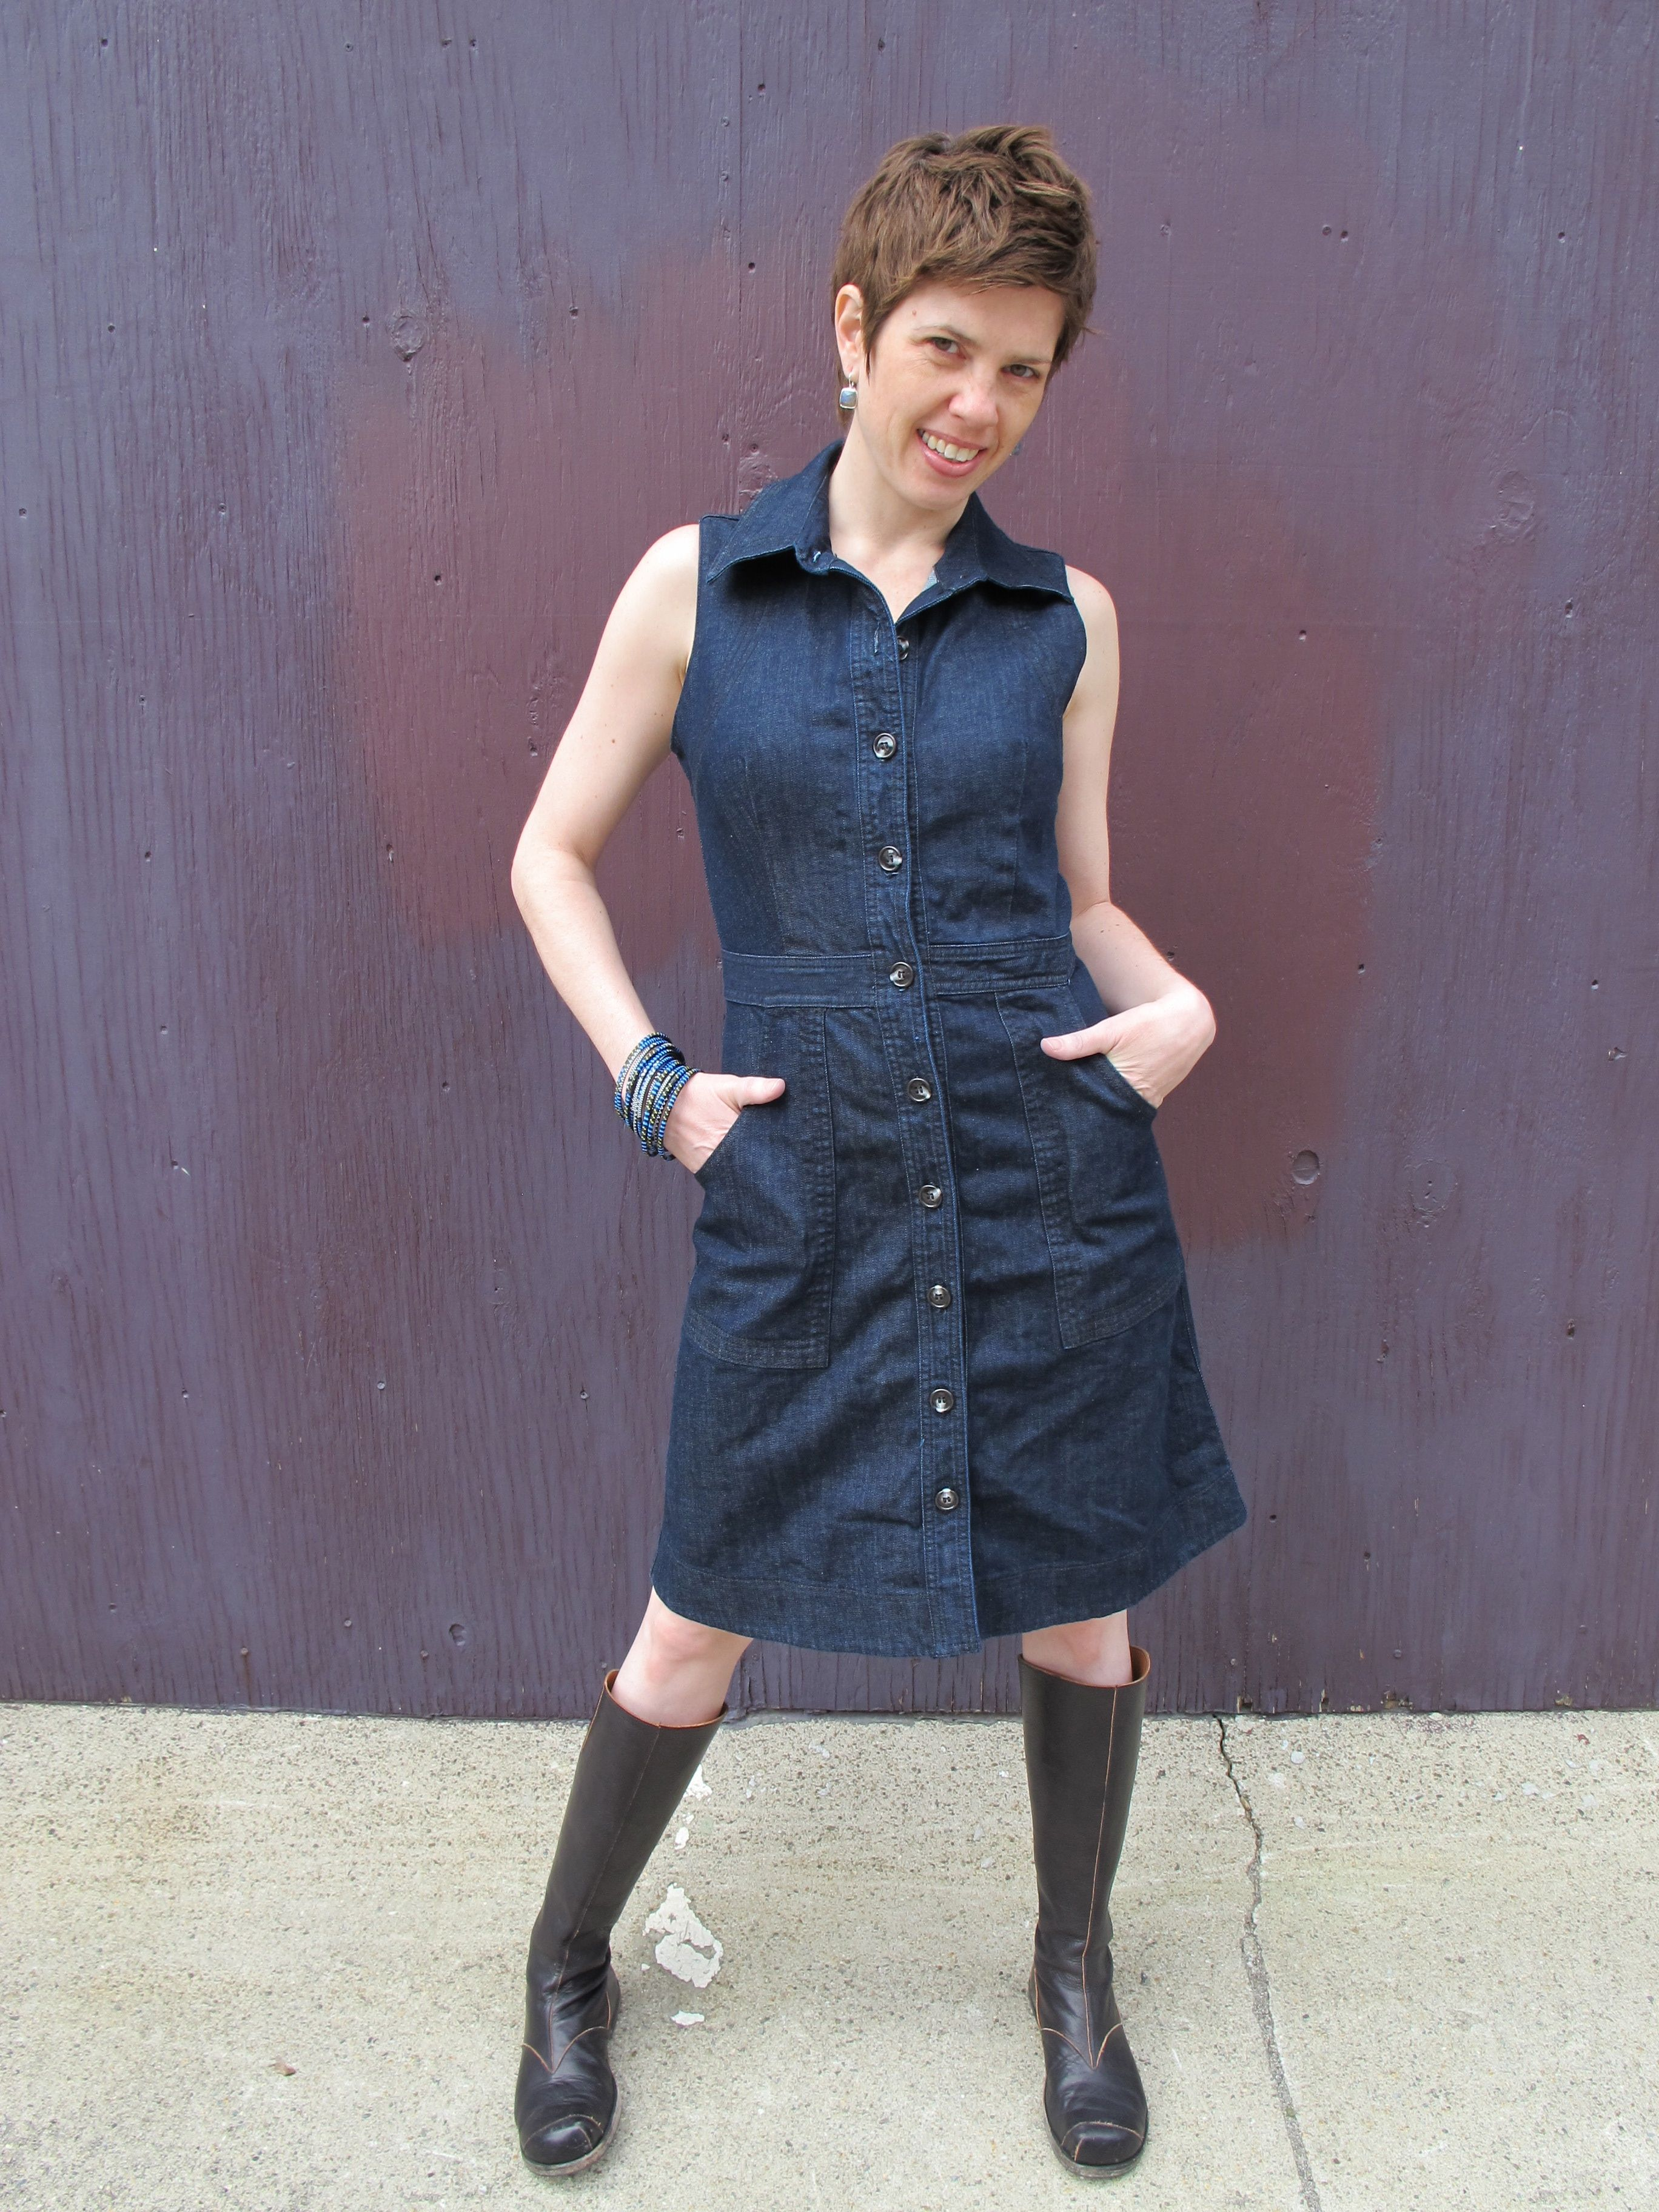 b300e3001d Here s one of my old friends Jenna modeling a Prairie Underground Draper  Jean dress and Cydwoq boots